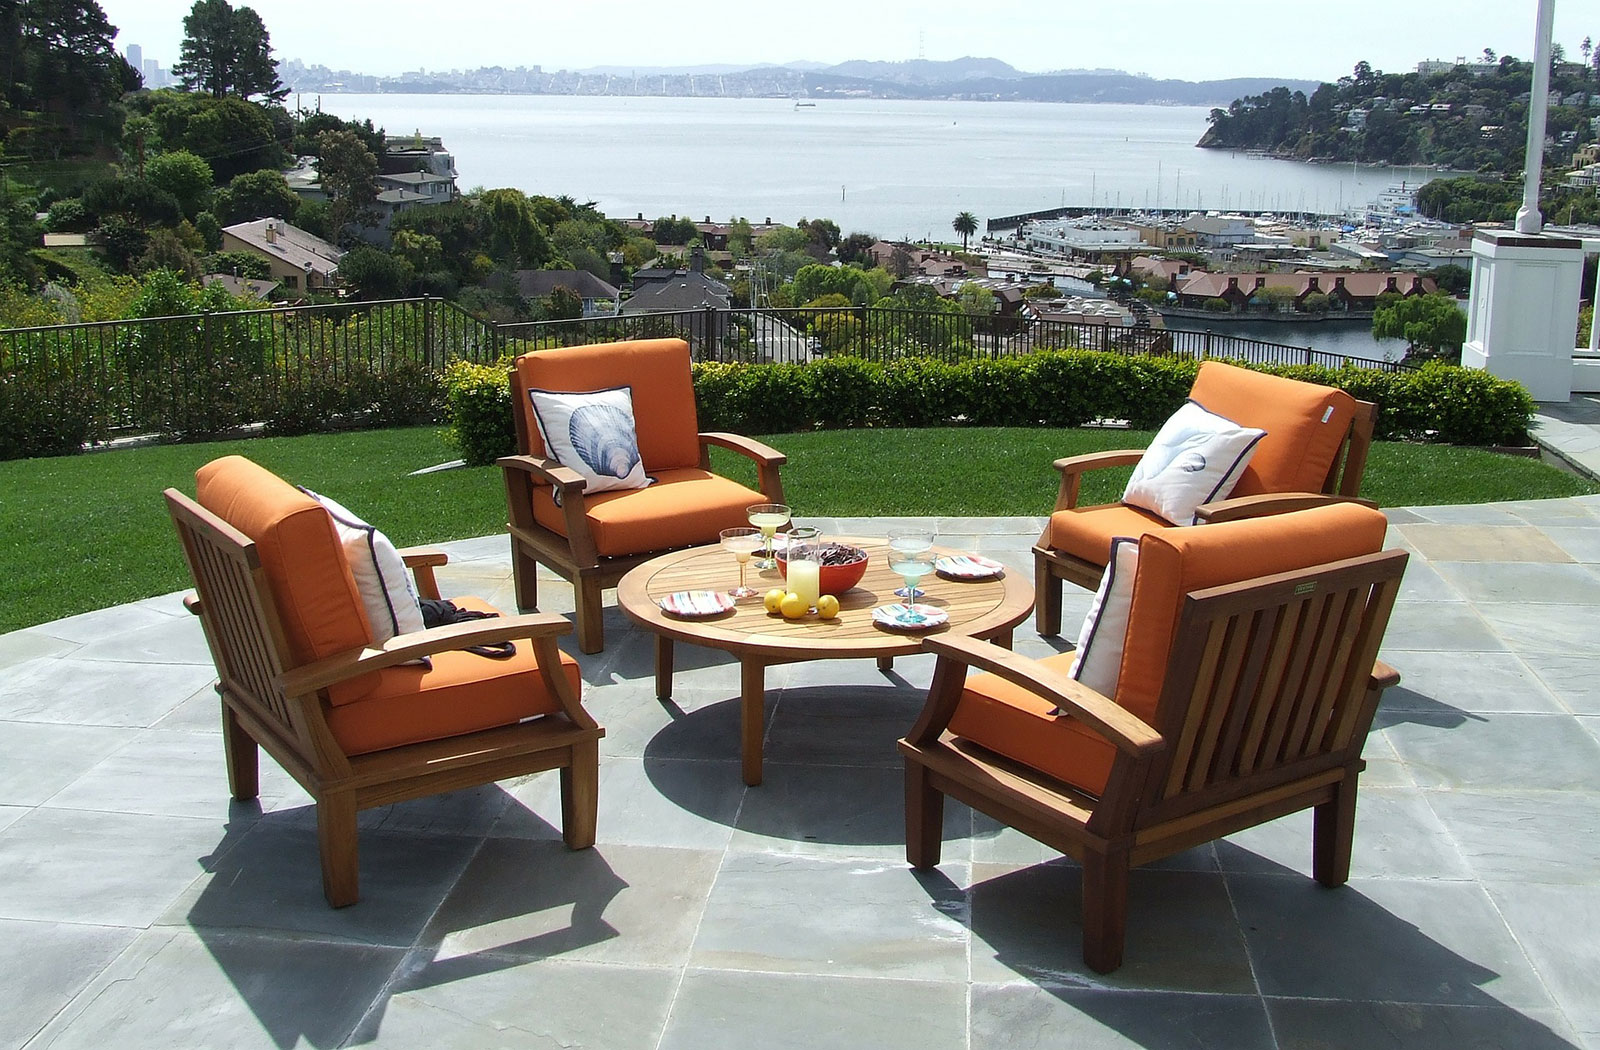 Paved patio with a great view